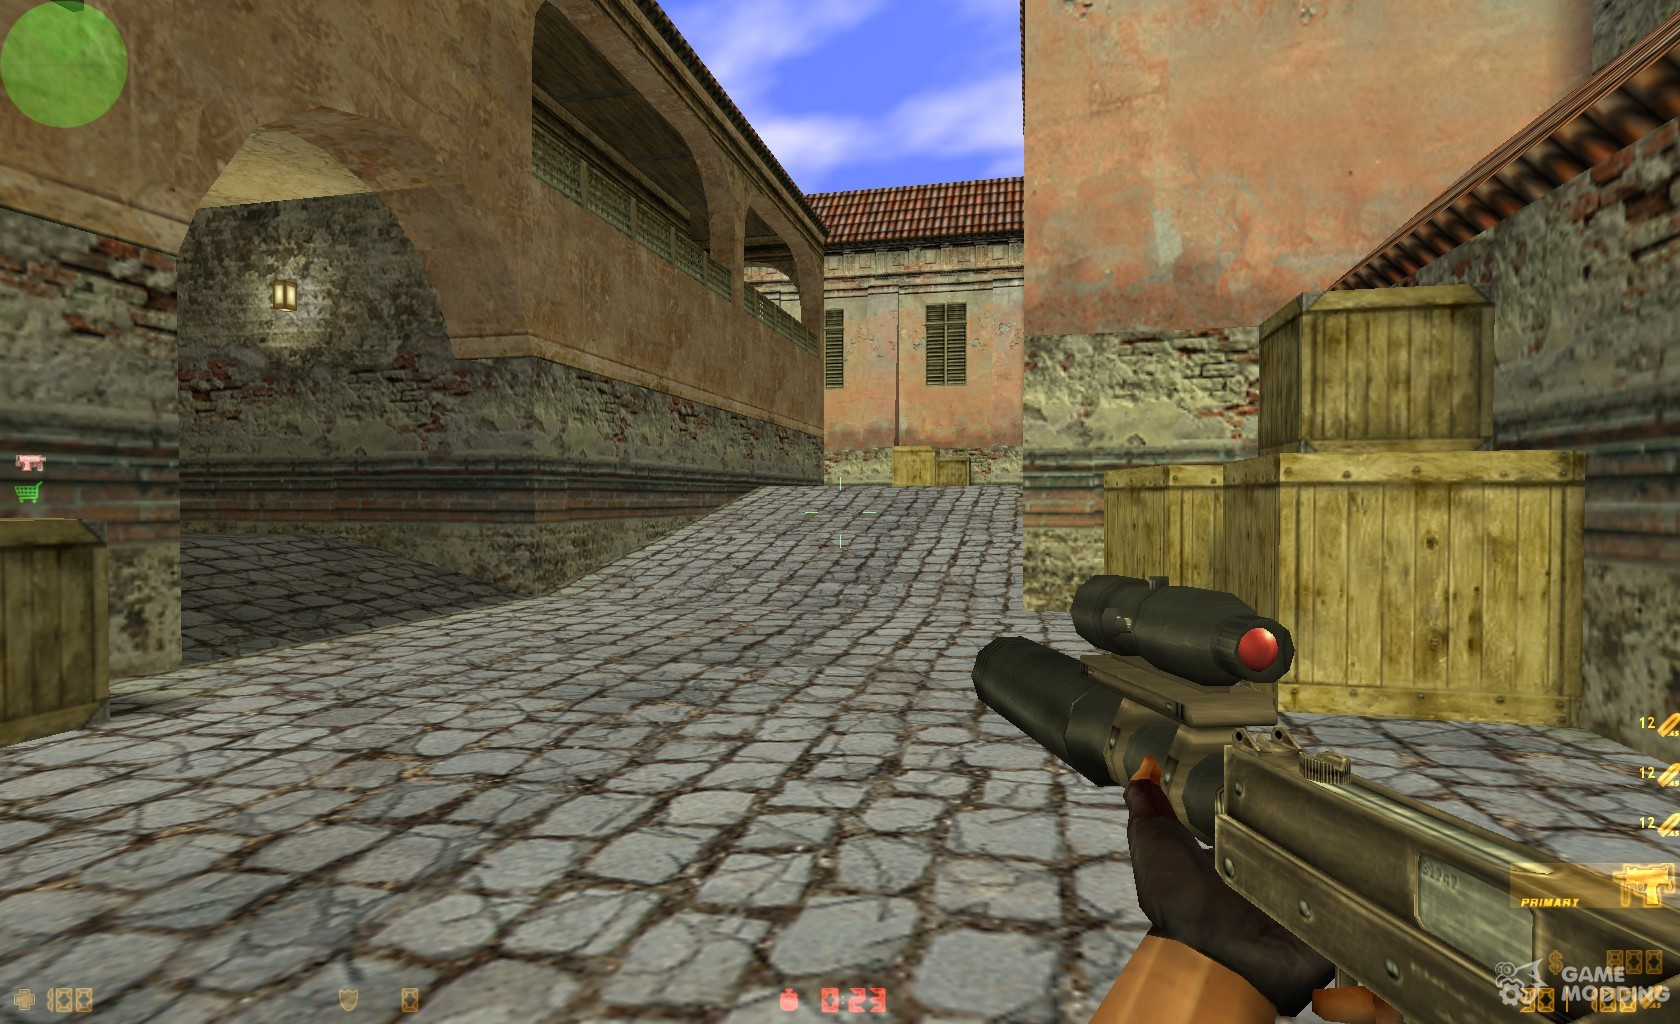 Counter-Strike Source now available on Steam for Mac